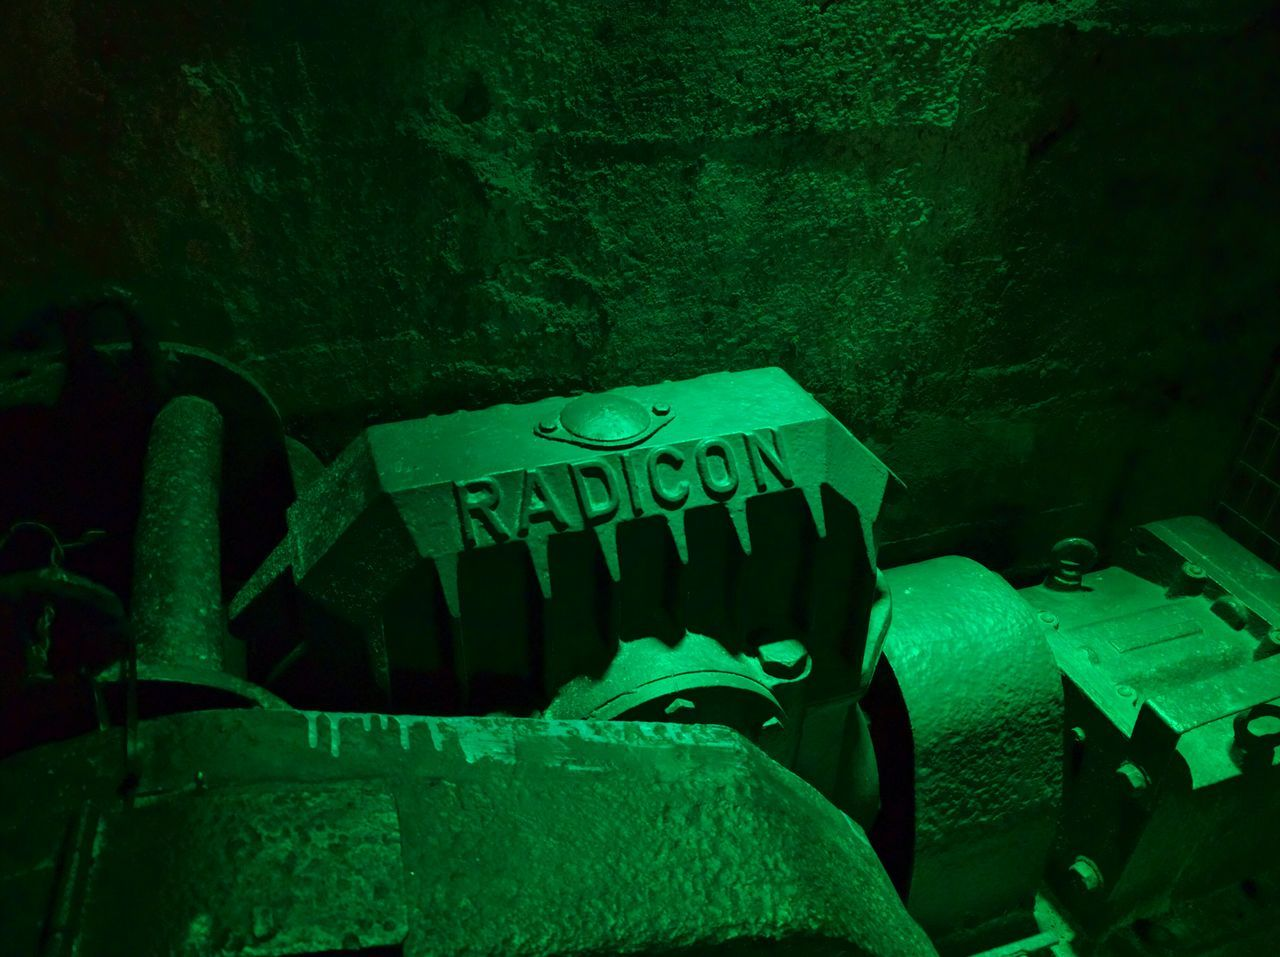 Radicon Green Color No People Indoors  Close-up Art And Craft Architecture Psyched Three Dimensional Indoors  Shape Mining Old-fashioned Industrial Equipment Bochum History Mining Industry Iron - Metal Mining Heritage Industry Factory Manufacturing Equipment Multi Colored Technology Indoors